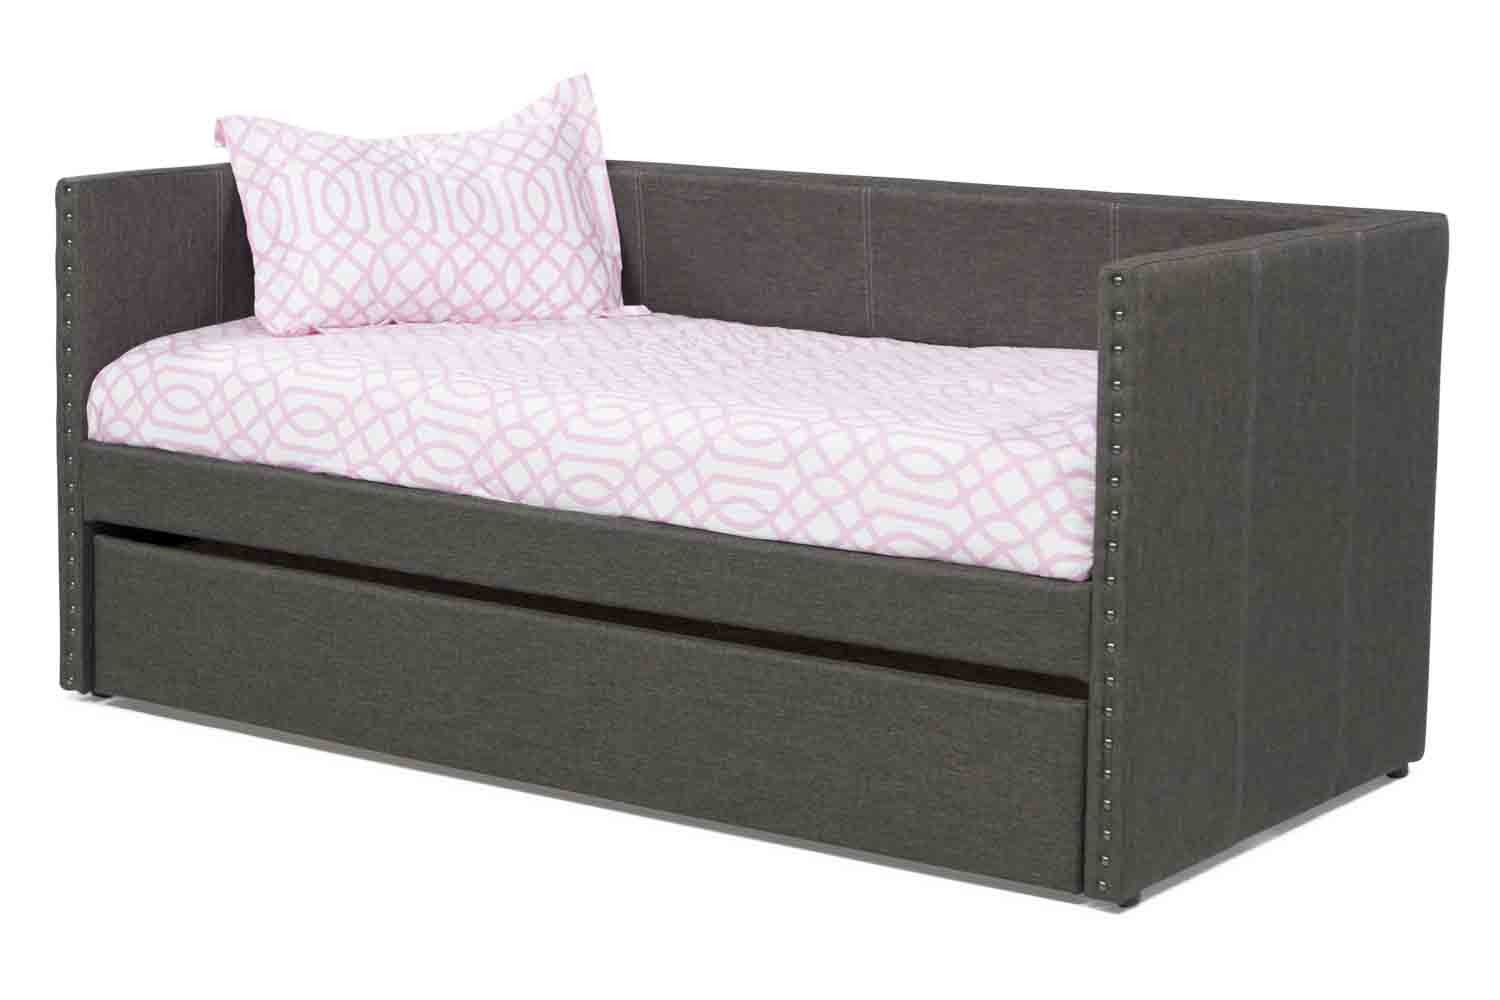 Heather Daybed Media Image 1 ...